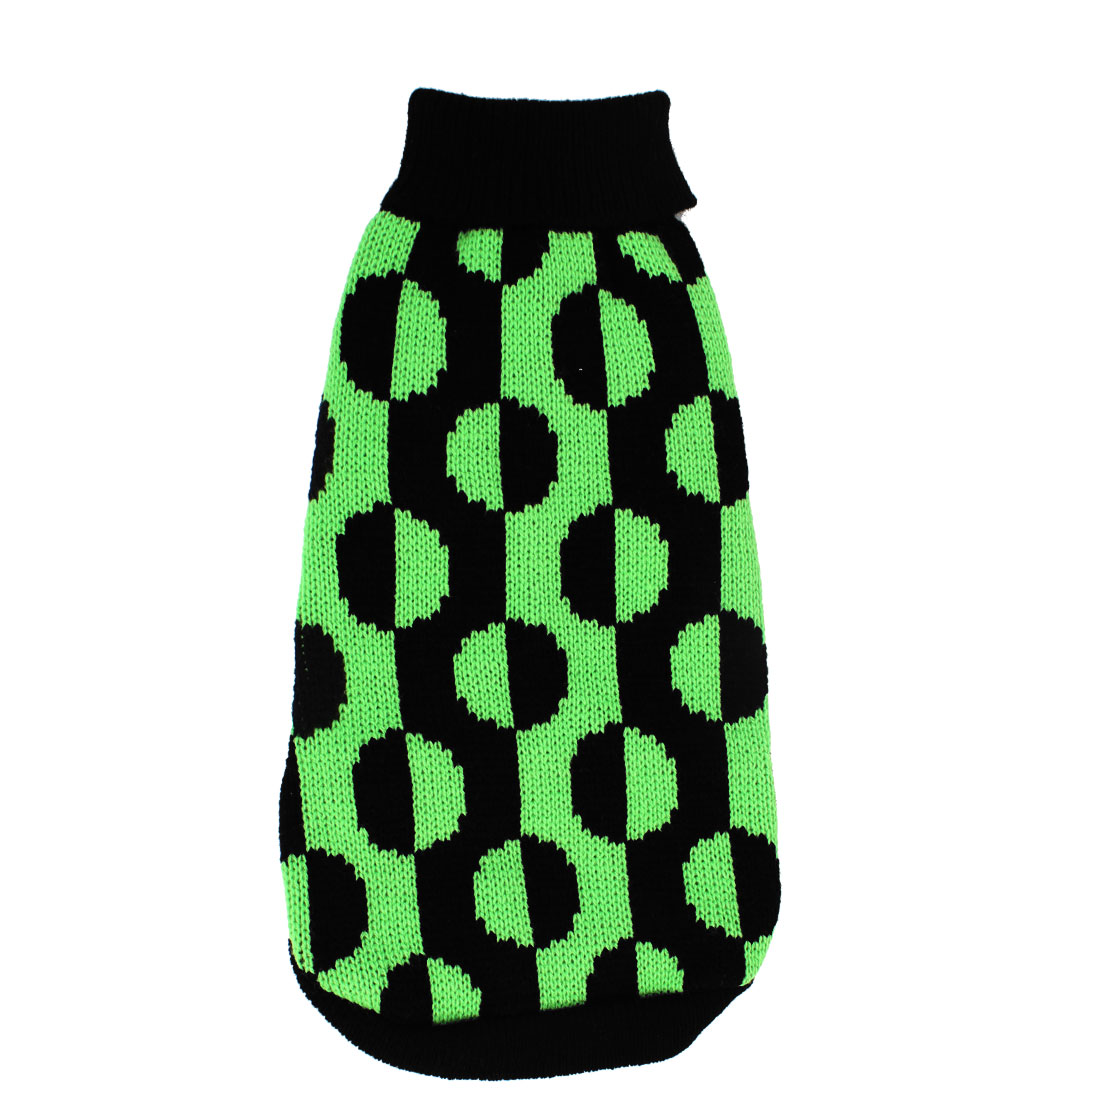 Stylish Black Green Jackuard Knitted Pet Puppy Dog Clothes Dog Apparel Sweater Size XXS